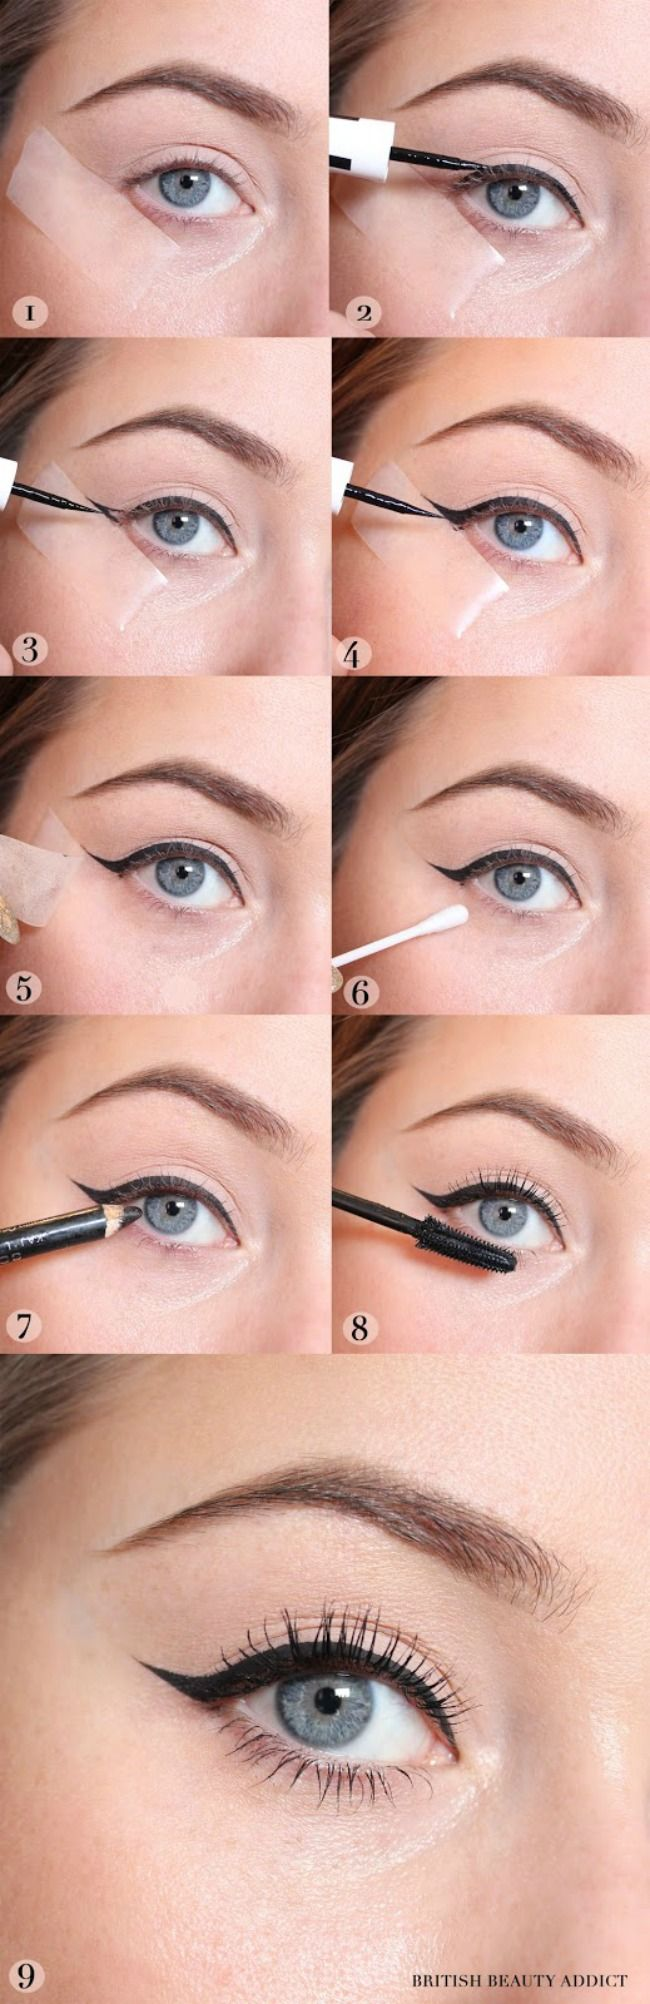 The 11 Best Eye Makeup Tips and Tricks  Page 2 of 3  The Eleven Best